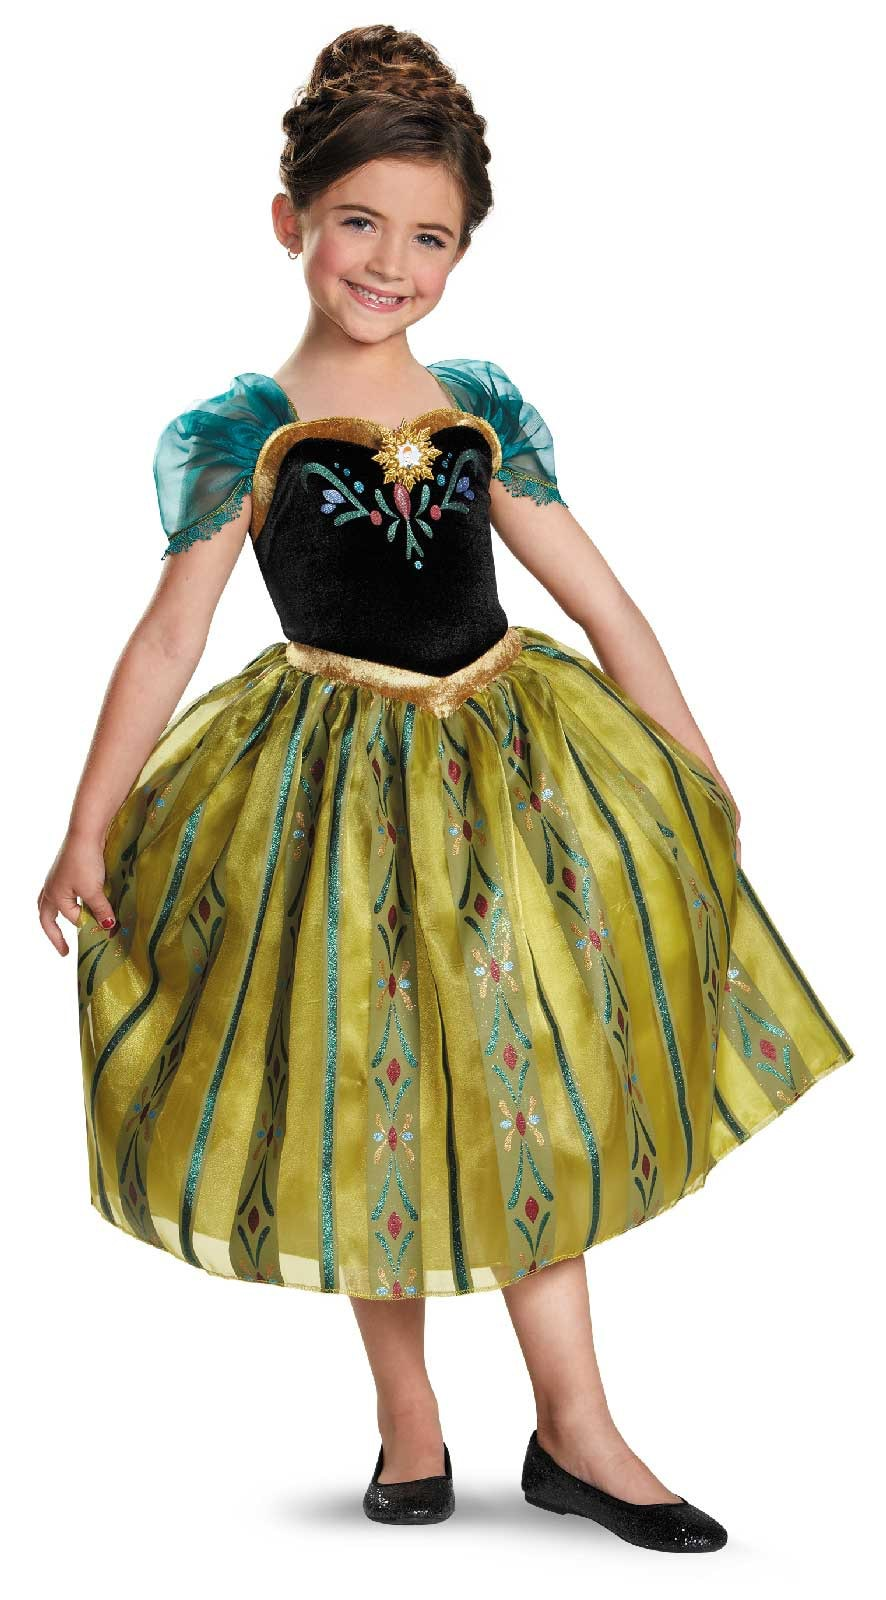 Frozen Anna Coronation Deluxe Child Costume Disguise DS DG76909 31 | Stay at Home Mum.com.au